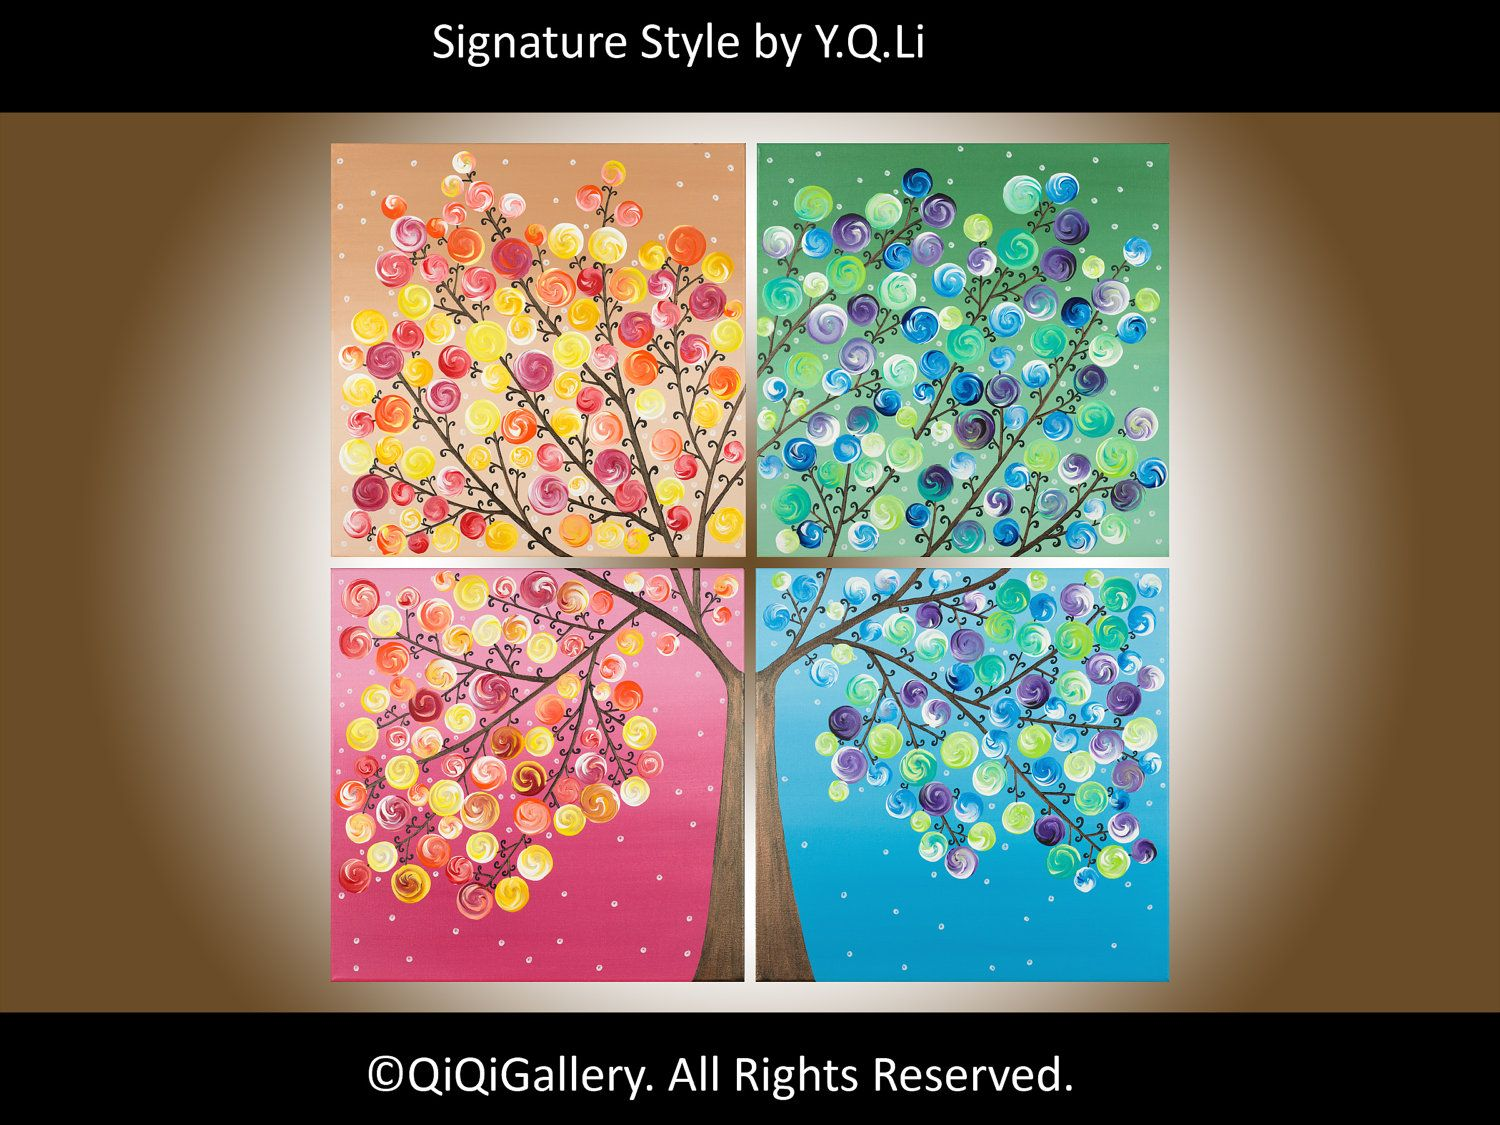 Abstract Landscape Painting - Large Square Original Modern Art On Canvas  Painting Tree Wall Decor Days of Happiness II